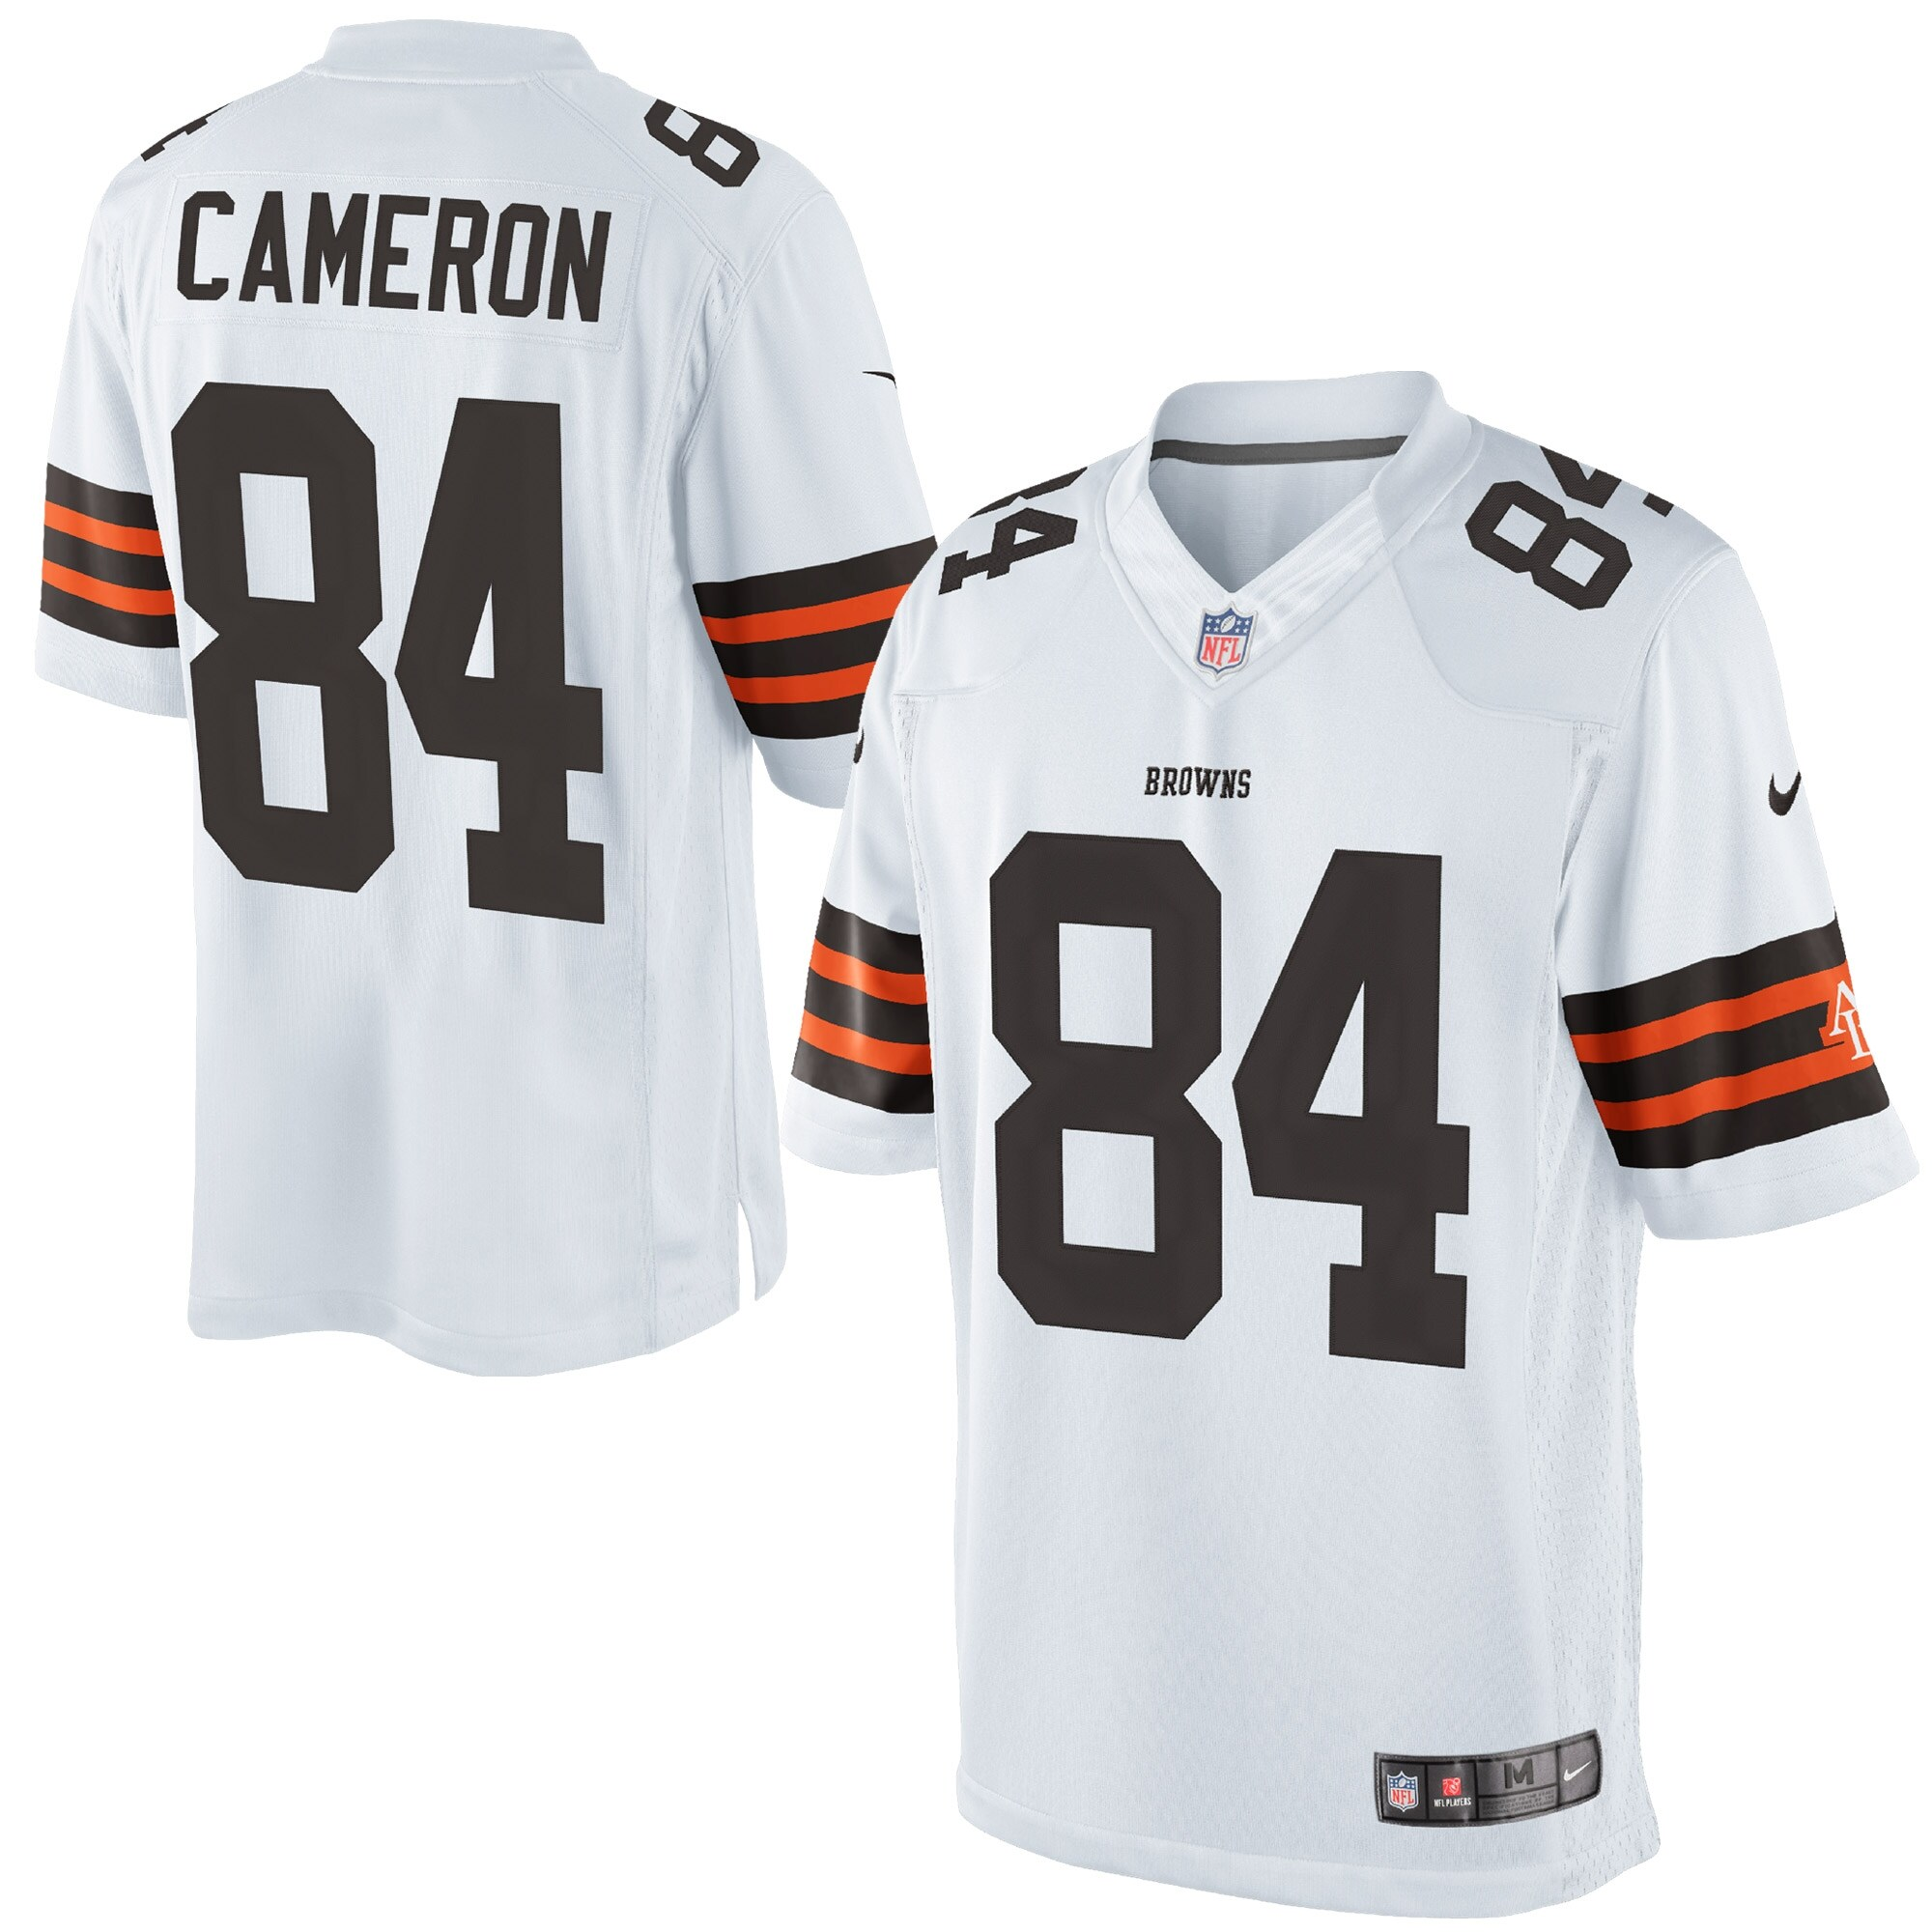 Jordan Cameron Cleveland Browns Historic Logo Nike Limited Jersey - White